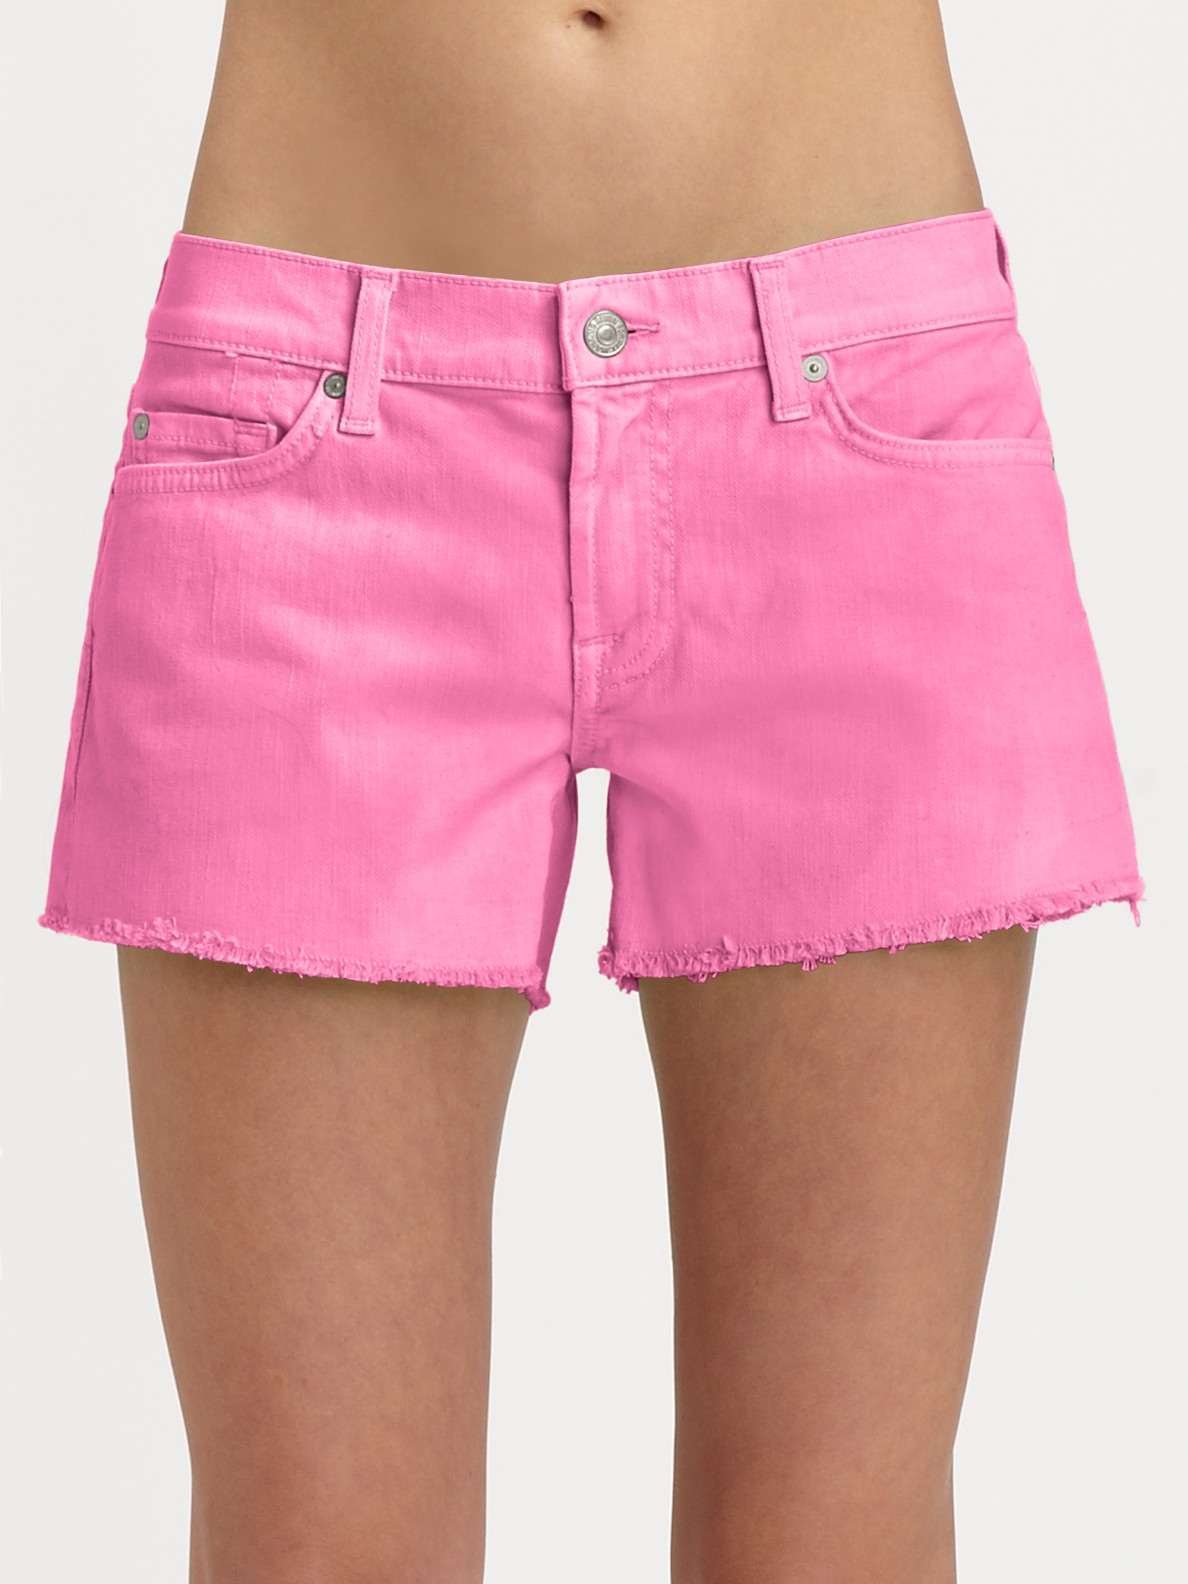 7 for all mankind Shorts Neon Cutoff Denim Shorts in Pink | Lyst